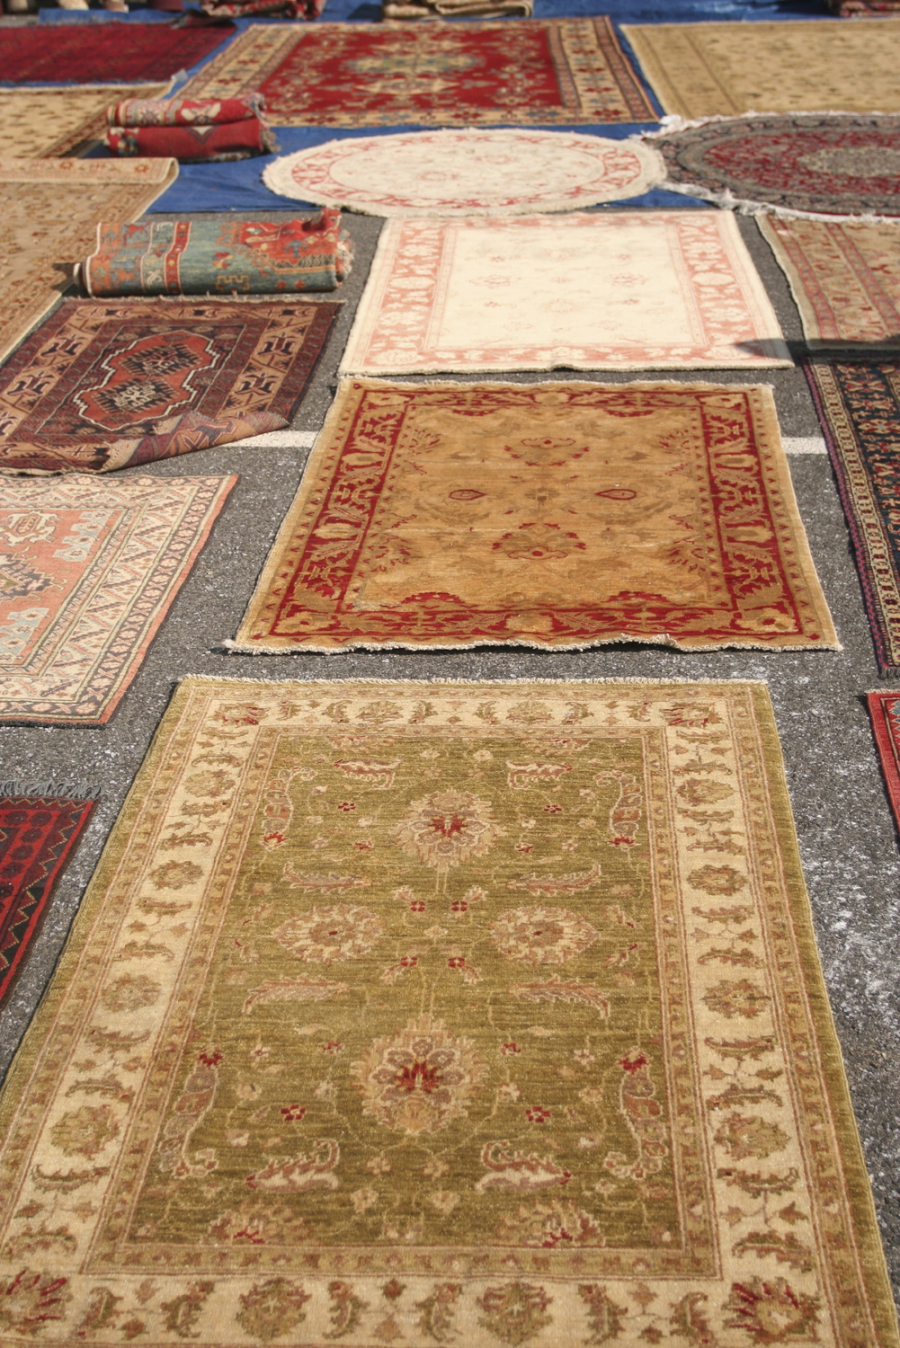 rug cleaning near me oriental img tampa